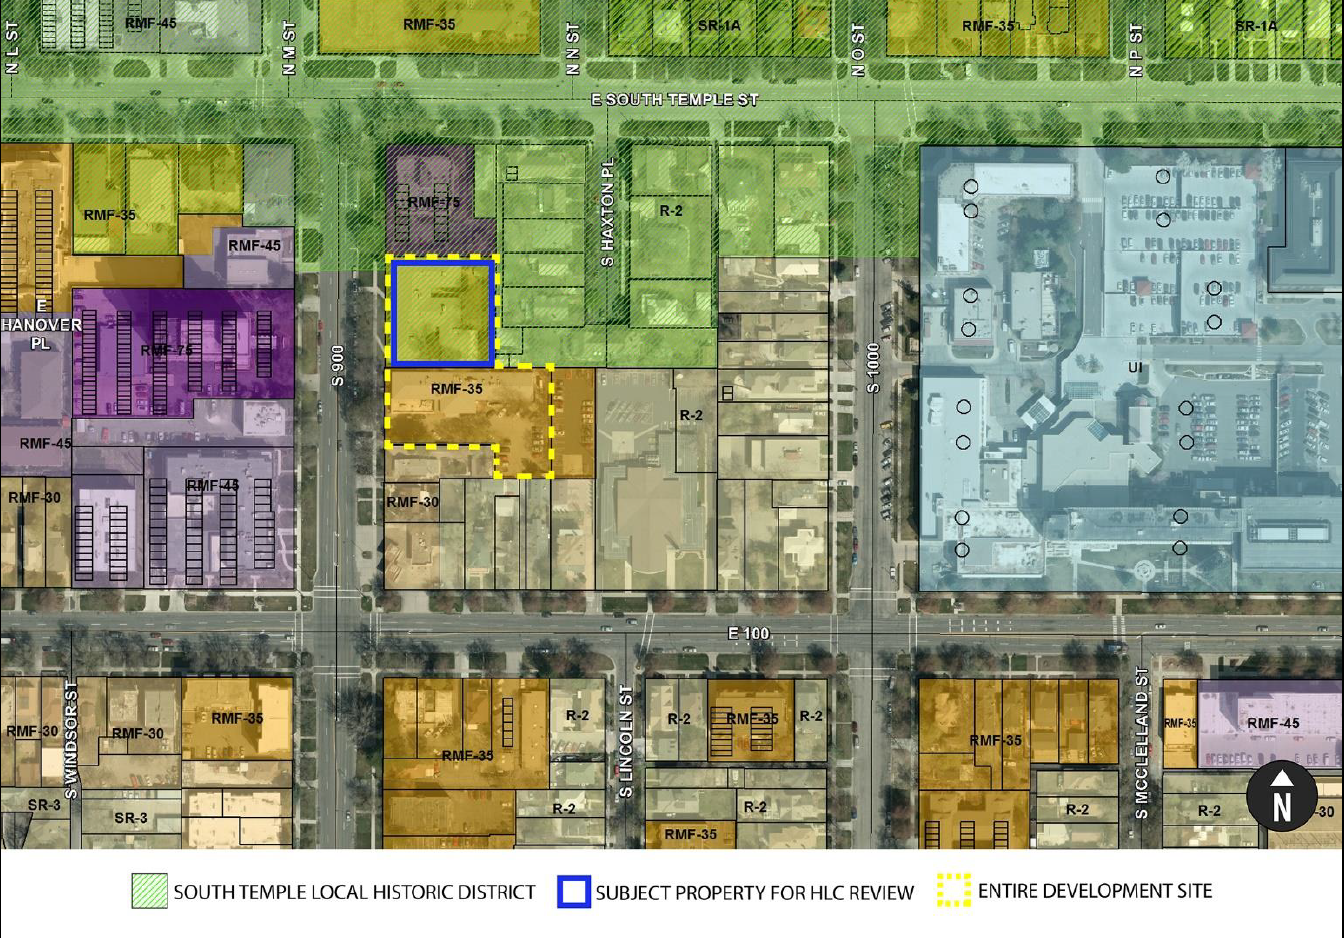 Zoning Map Of 900 East Block Of South Temple Building